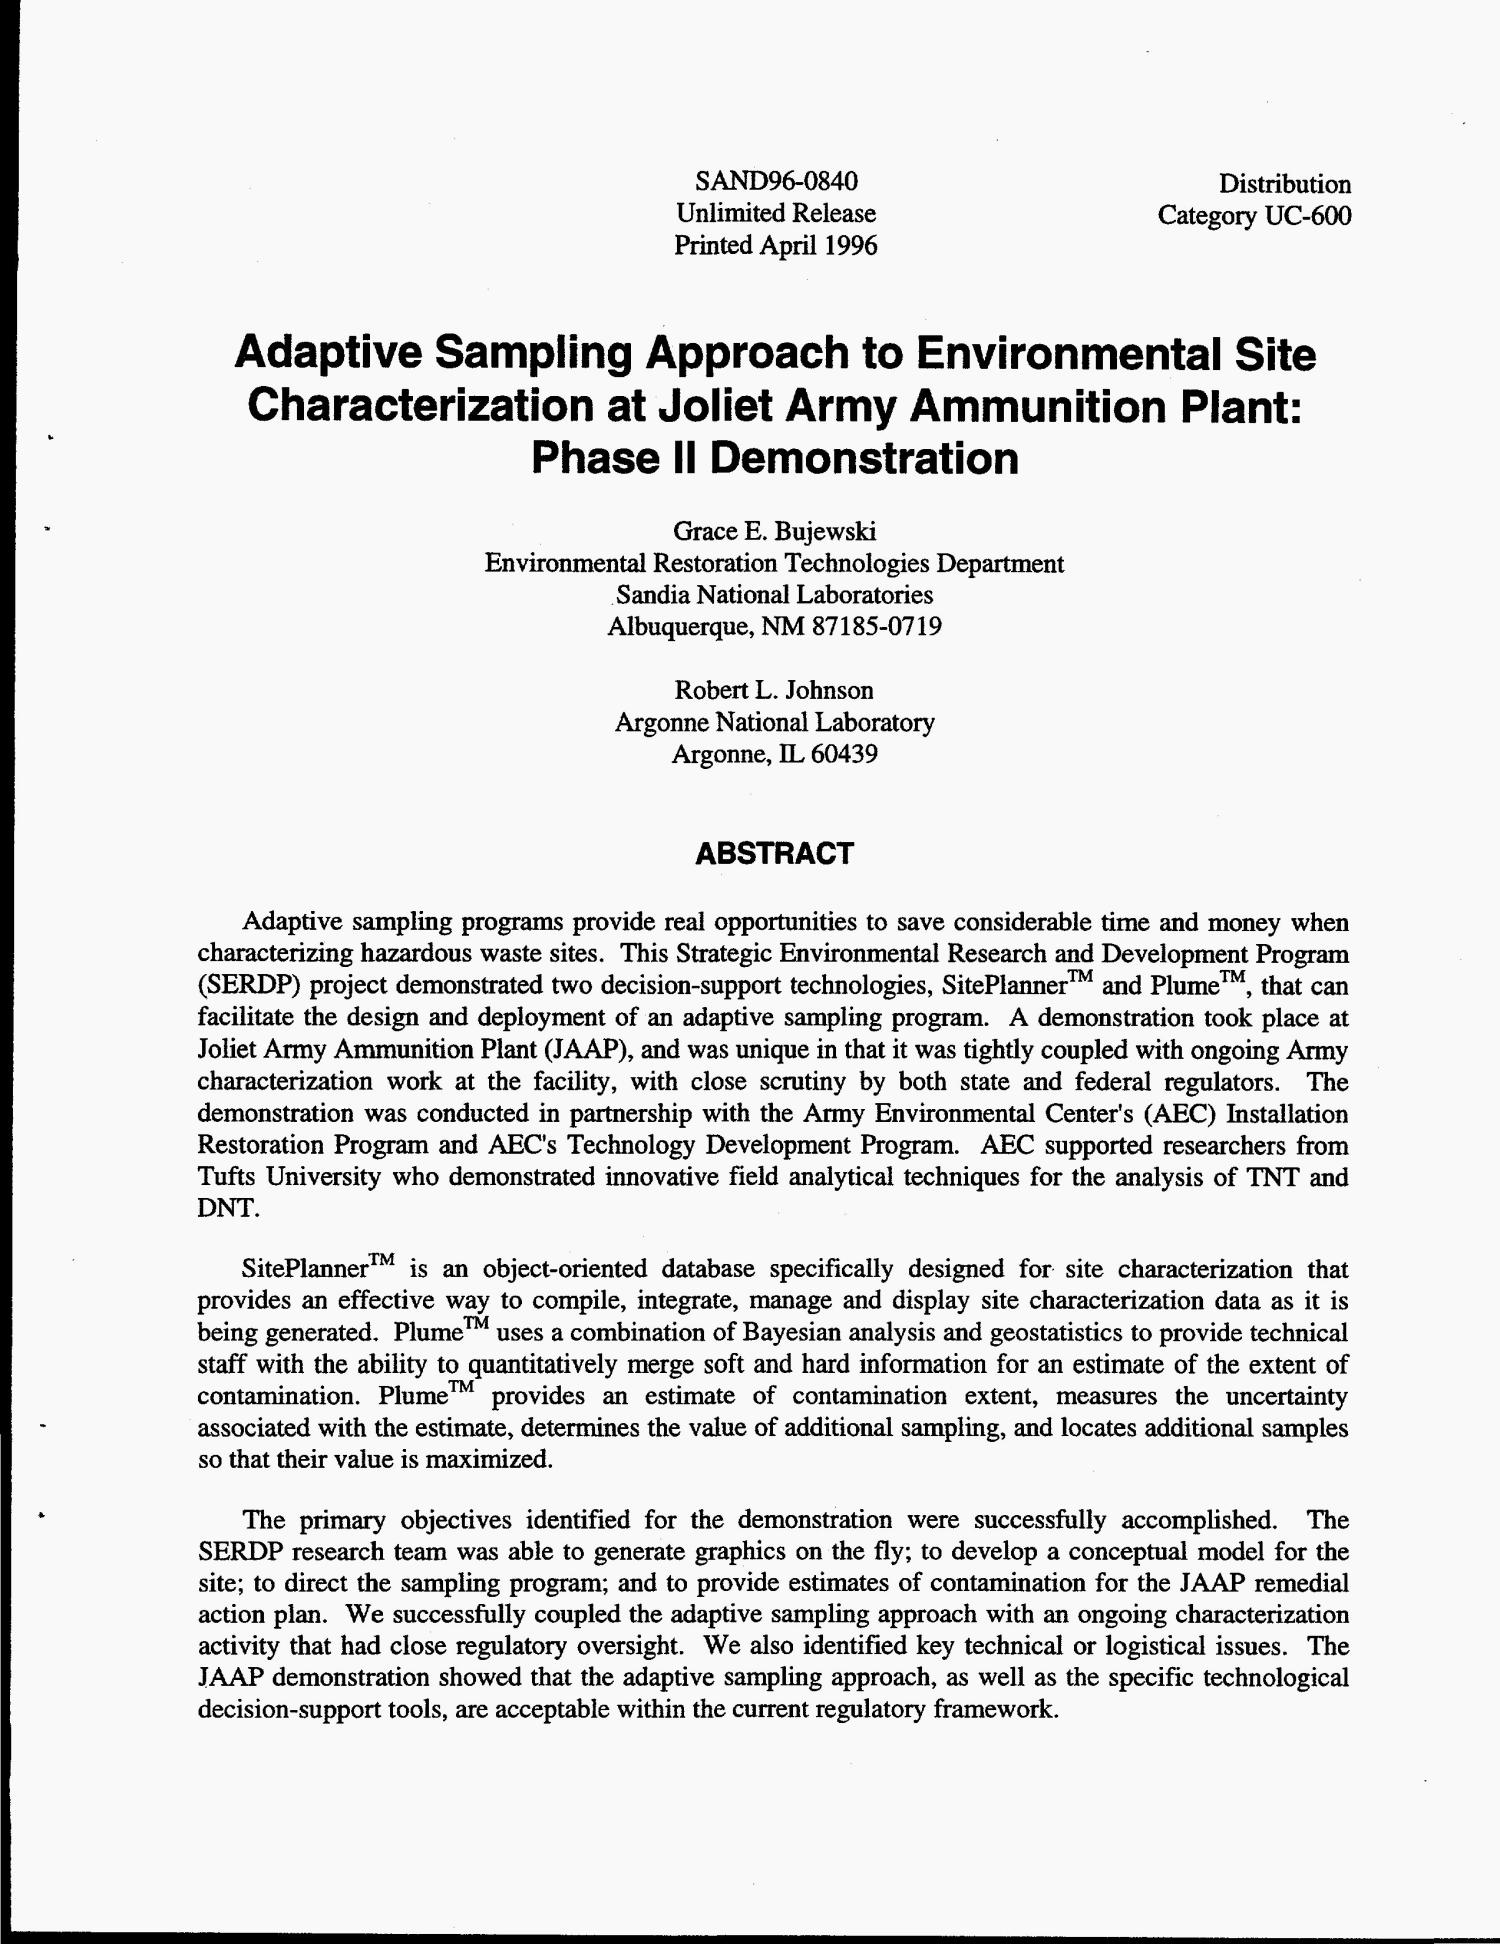 Adaptive Sampling approach to environmental site characterization at Joliet Army Ammunition Plant: Phase 2 demonstration                                                                                                      [Sequence #]: 4 of 35